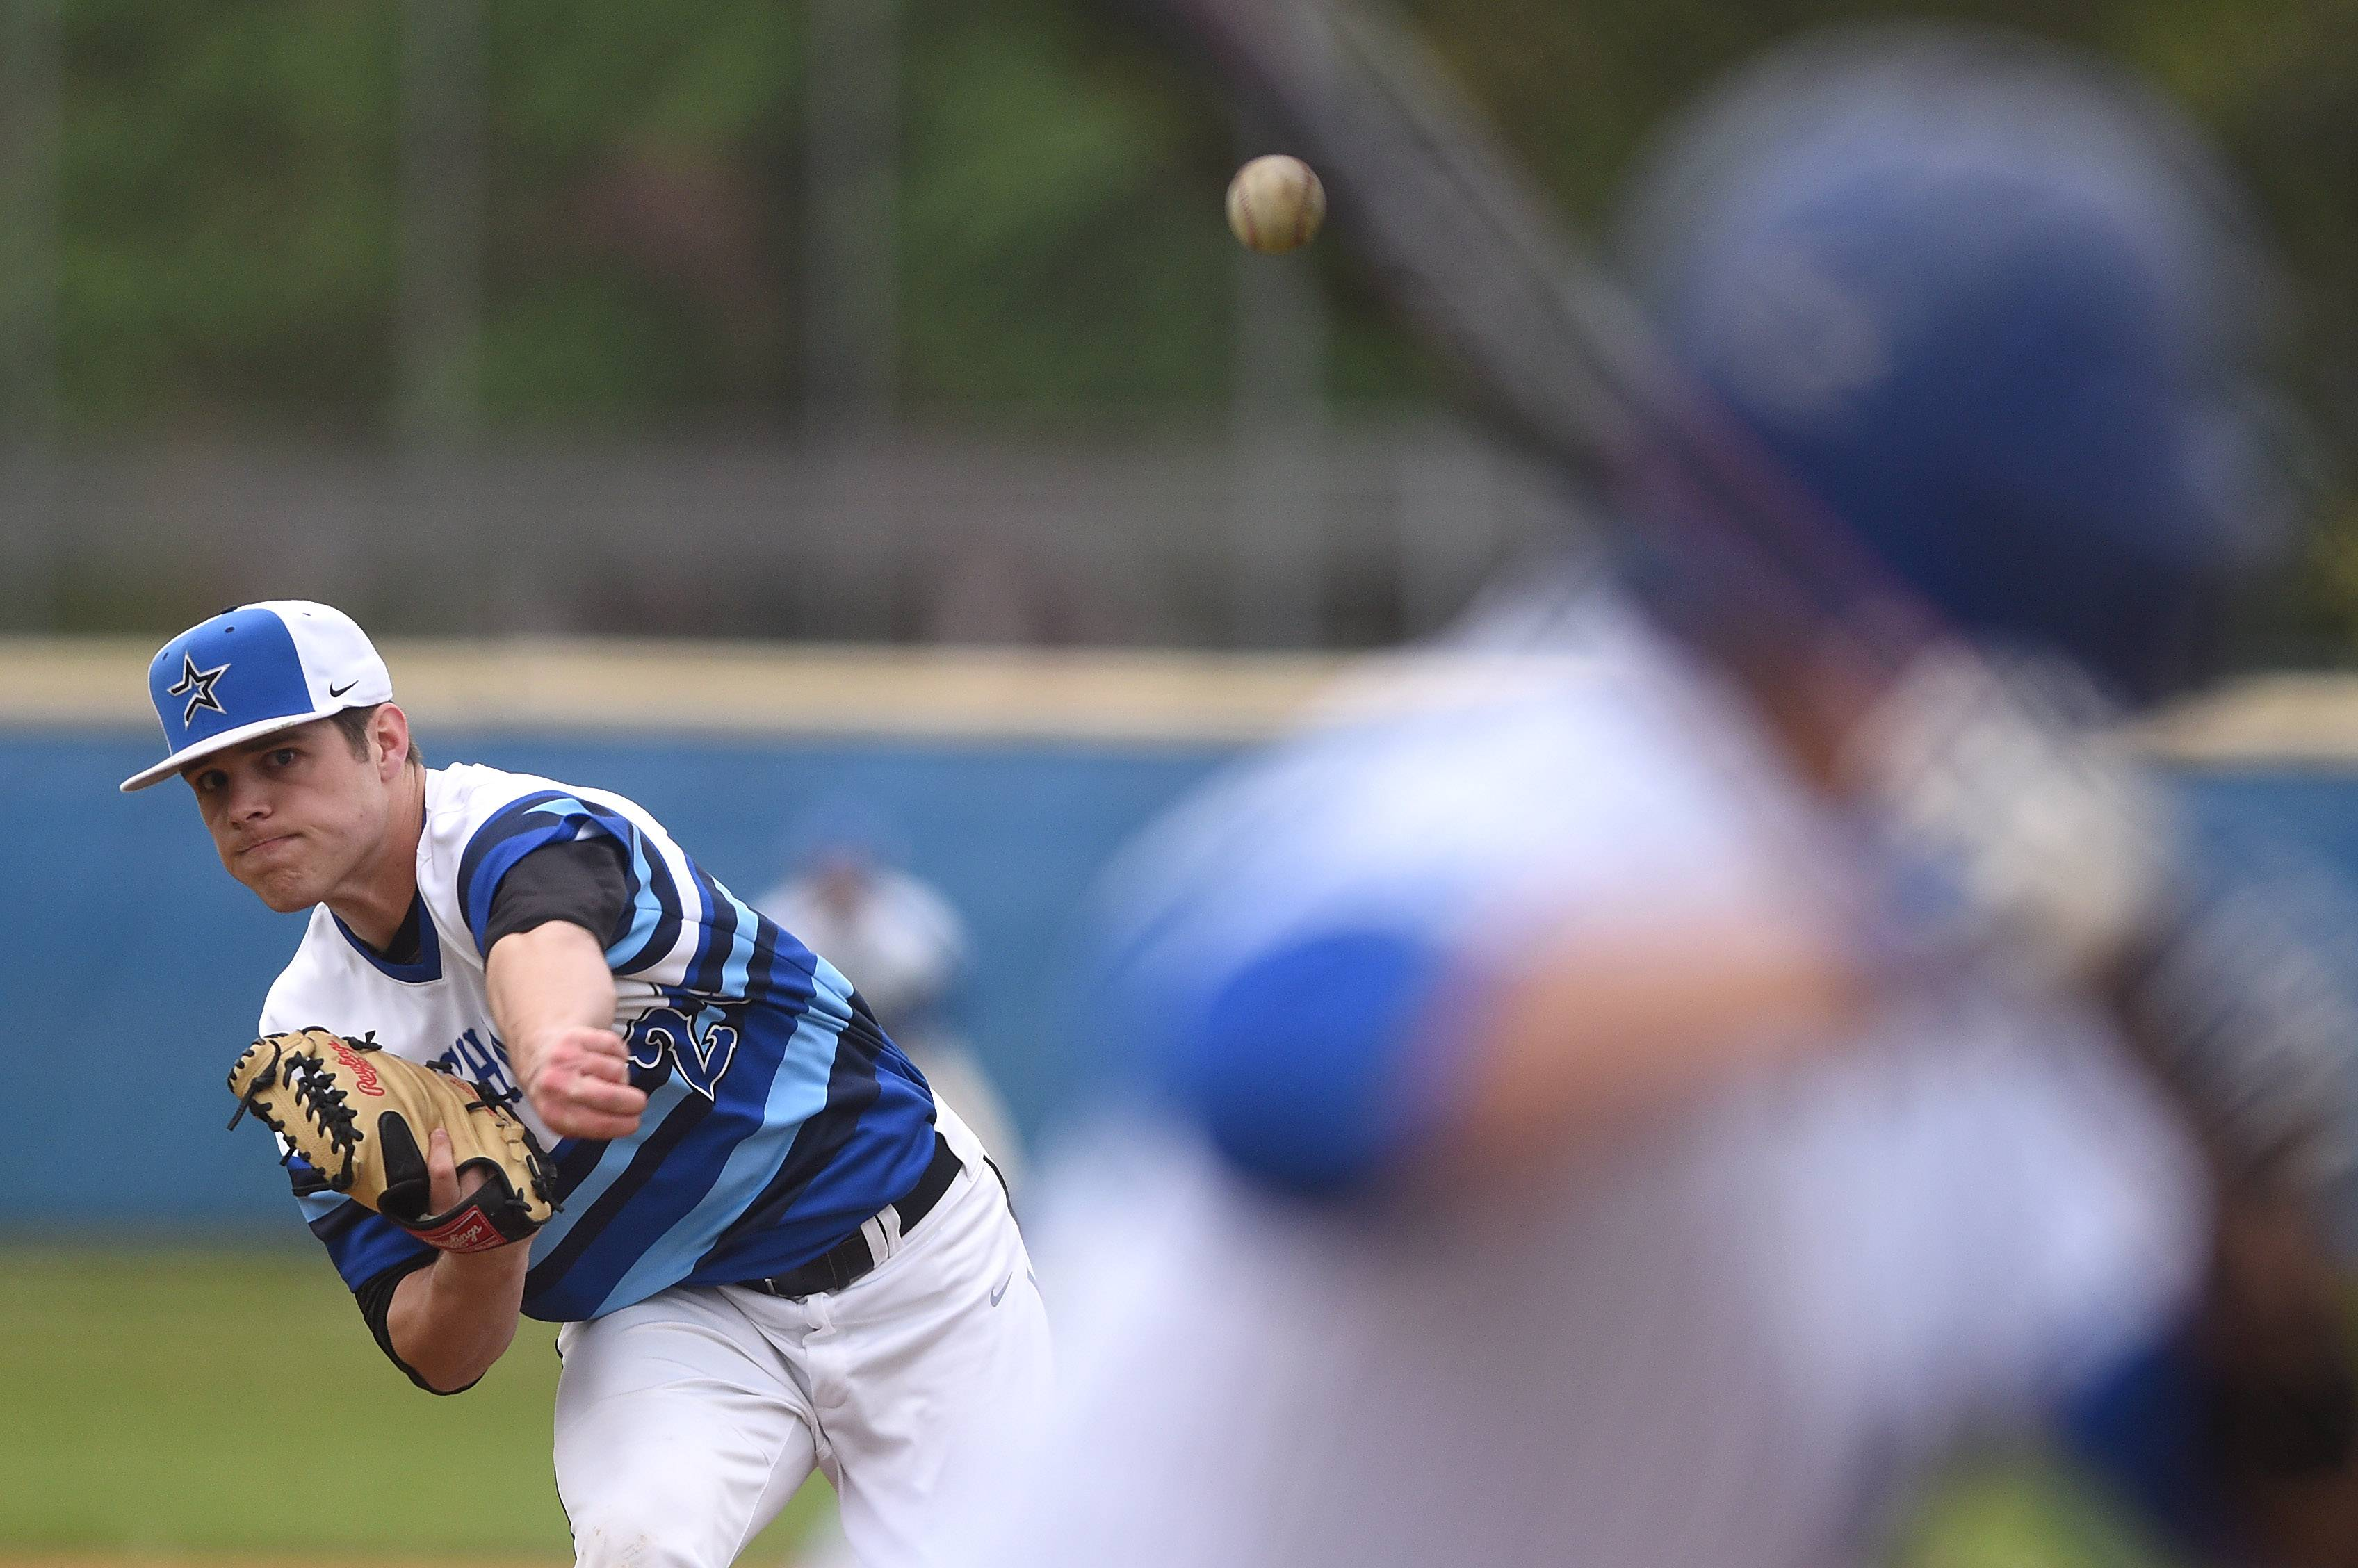 Baseball: St. Charles North tops Geneva for 14th straight win